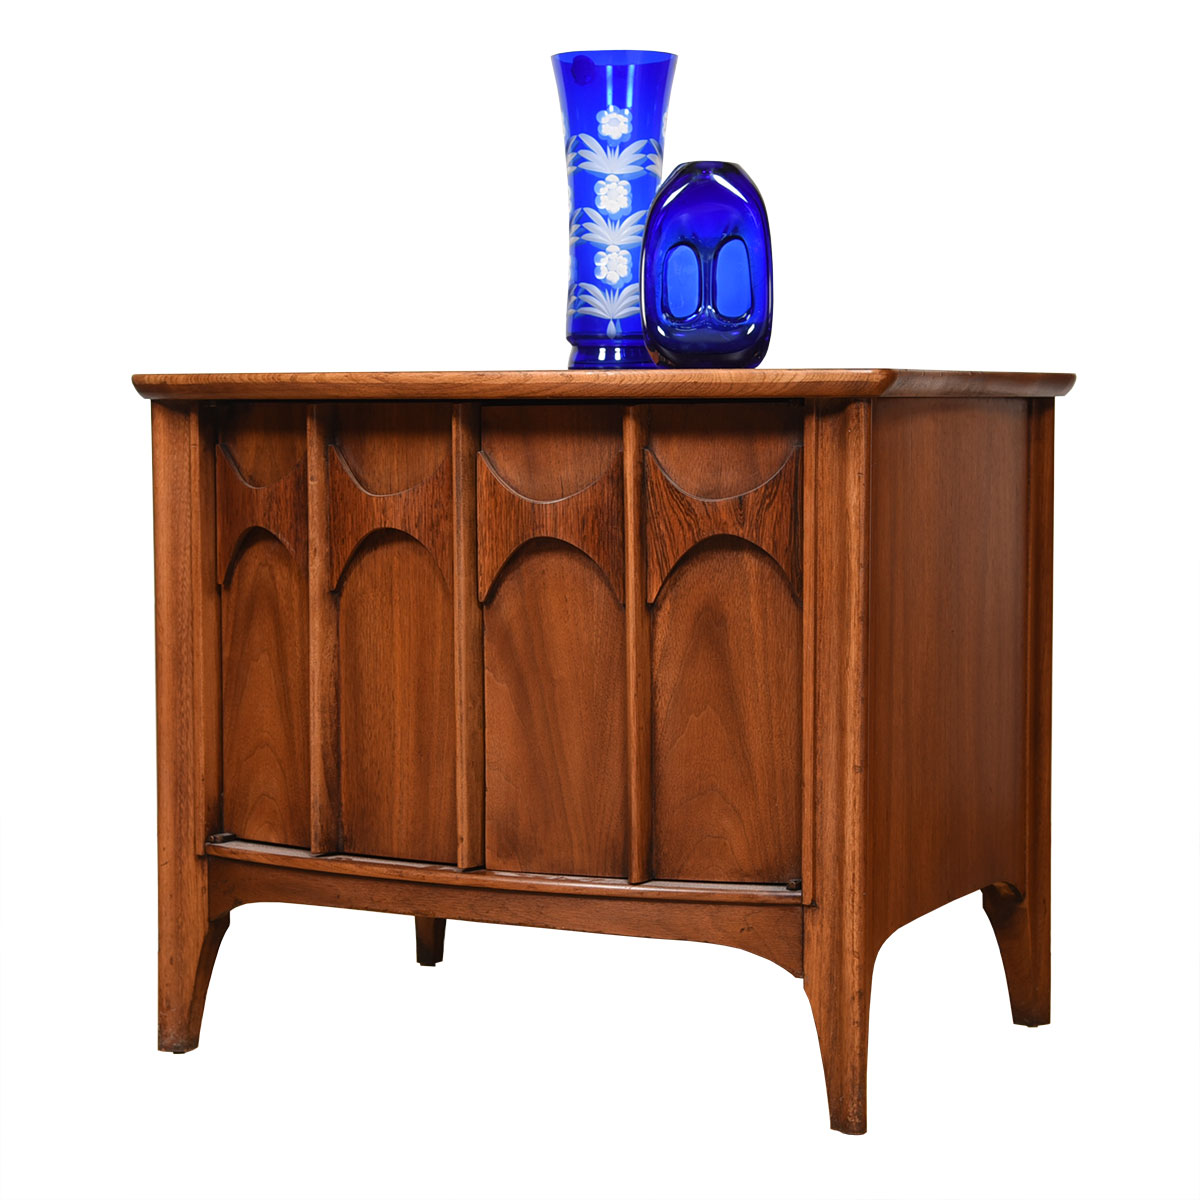 Kent-Coffey Perspecta MCM Sculpted Handle Accent Table w/ Storage